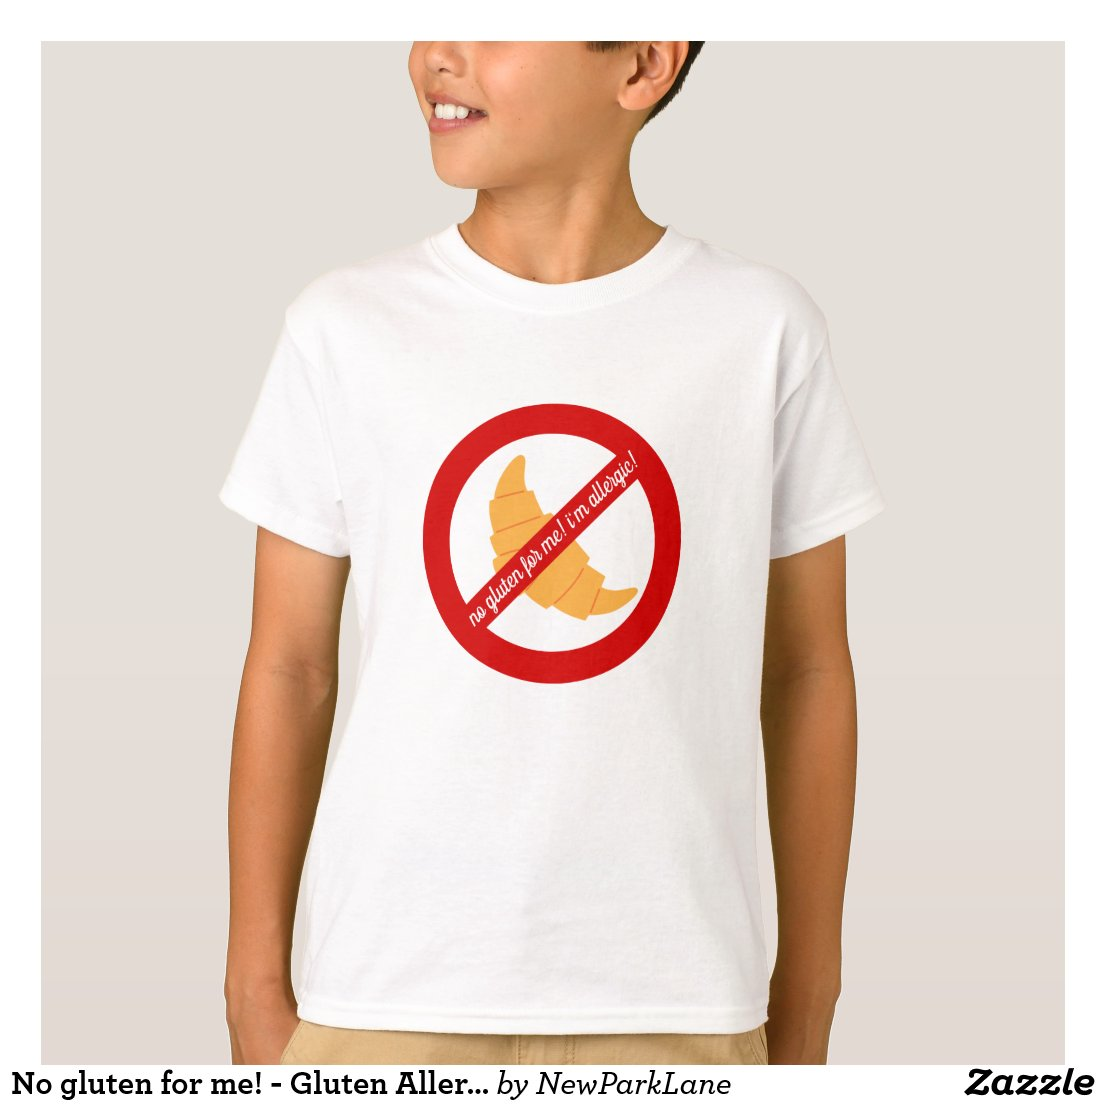 No gluten for me! - Gluten Allergy Alert T-Shirt